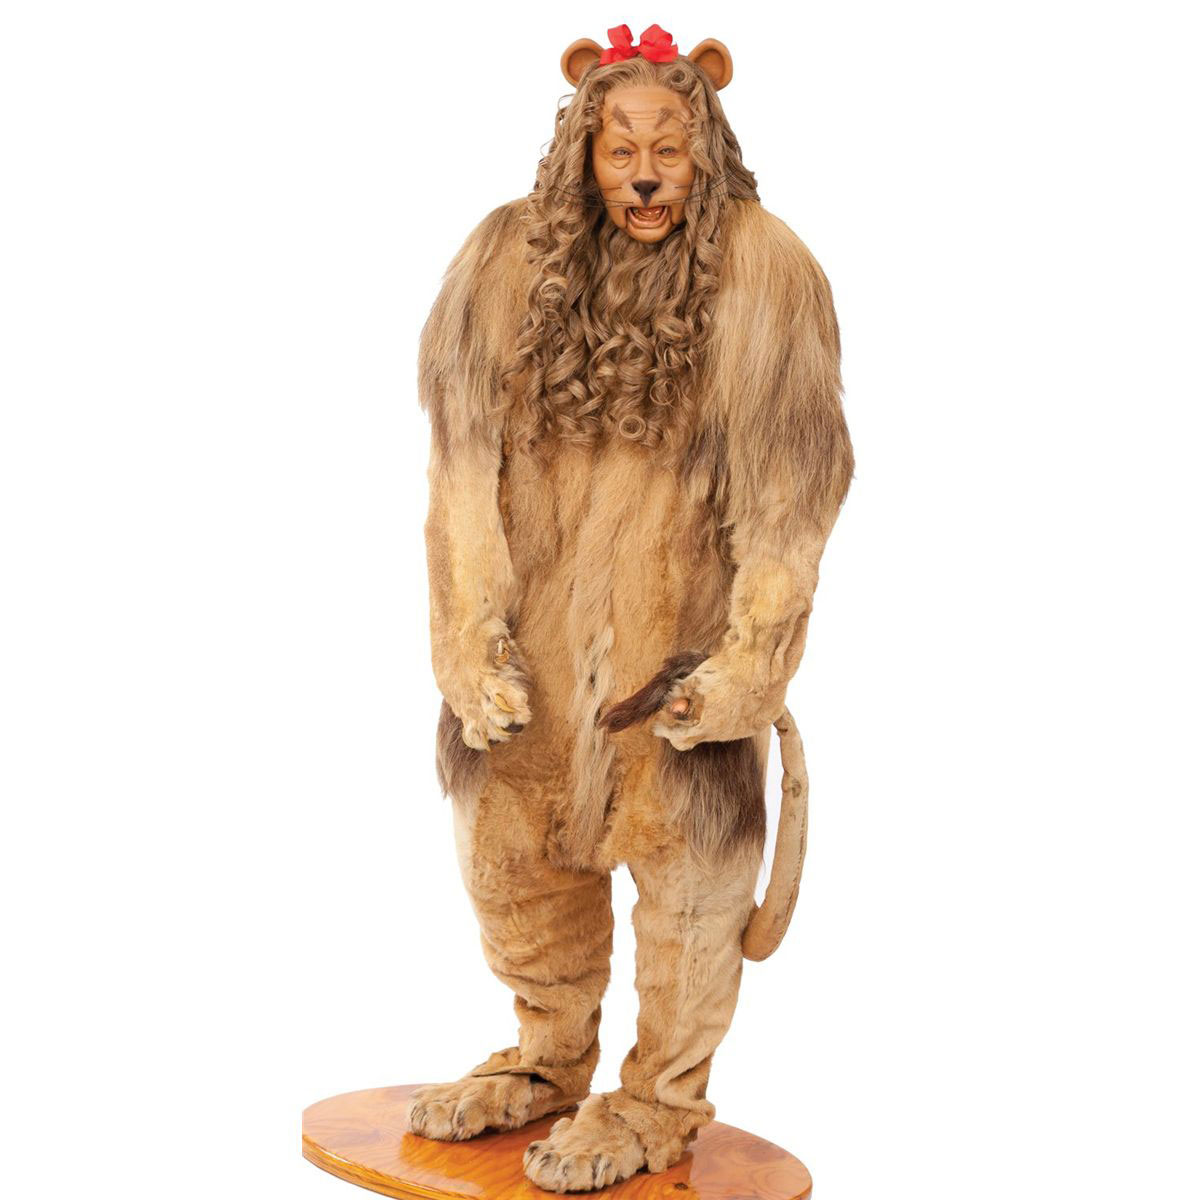 Real cowardly lion costume - photo#1